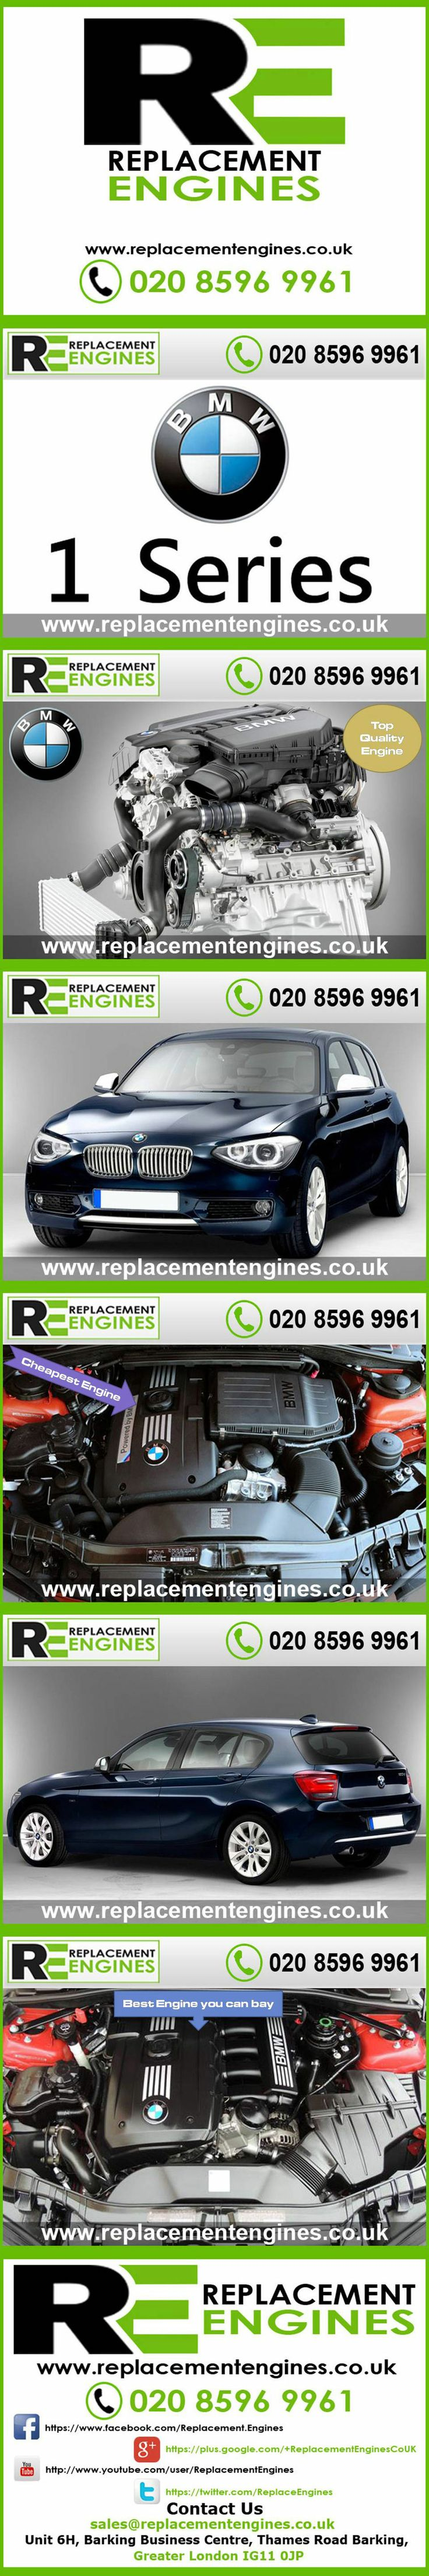 BMW 1 Series Engines for sale at the cheapest prices, we have low mileage used & reconditioned engines in stock now, ready to be delivered to anywhere in the UK or overseas, visit Replacement Engines website here.